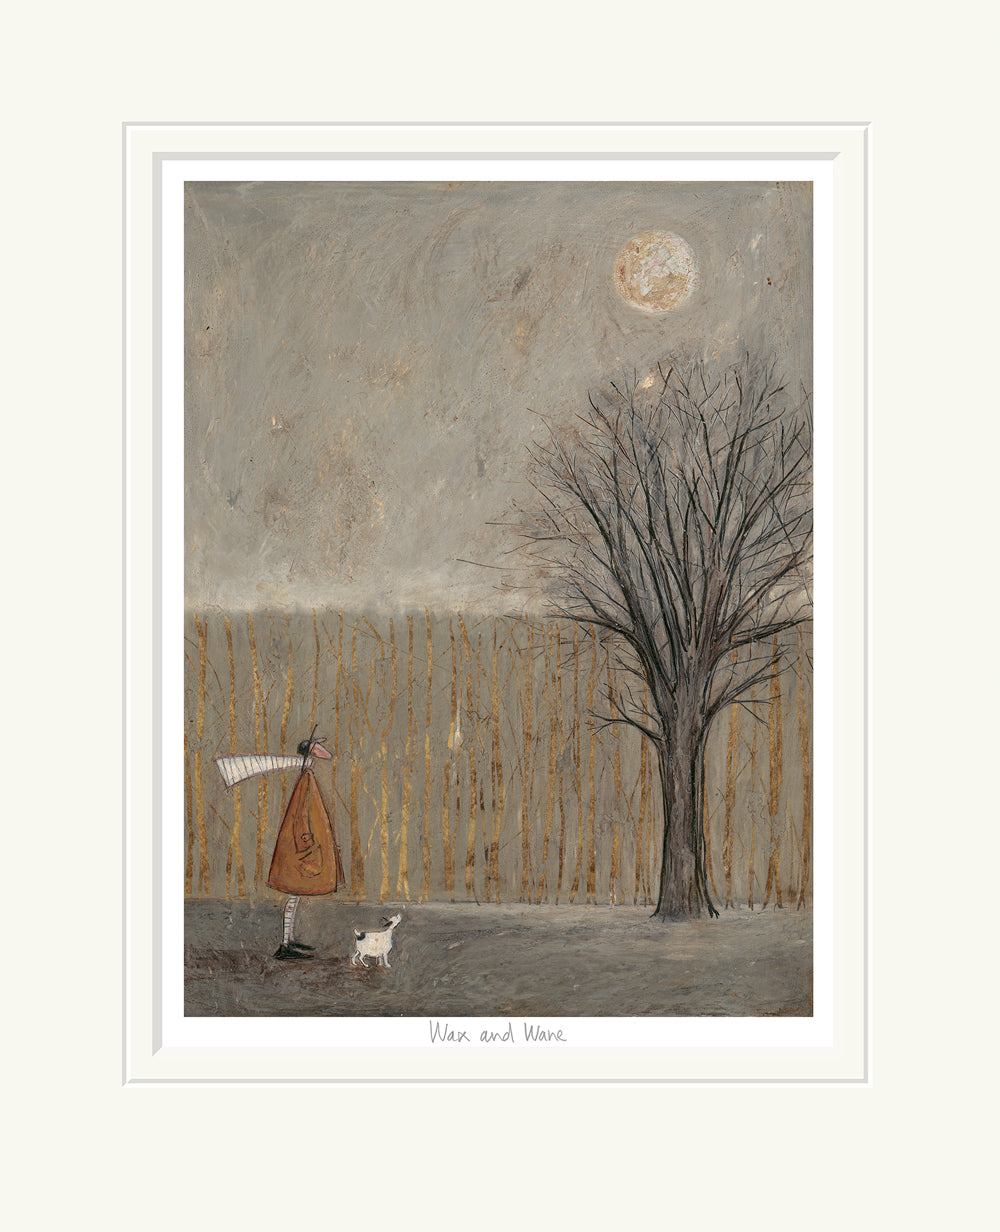 Wax and Wane by Sam Toft